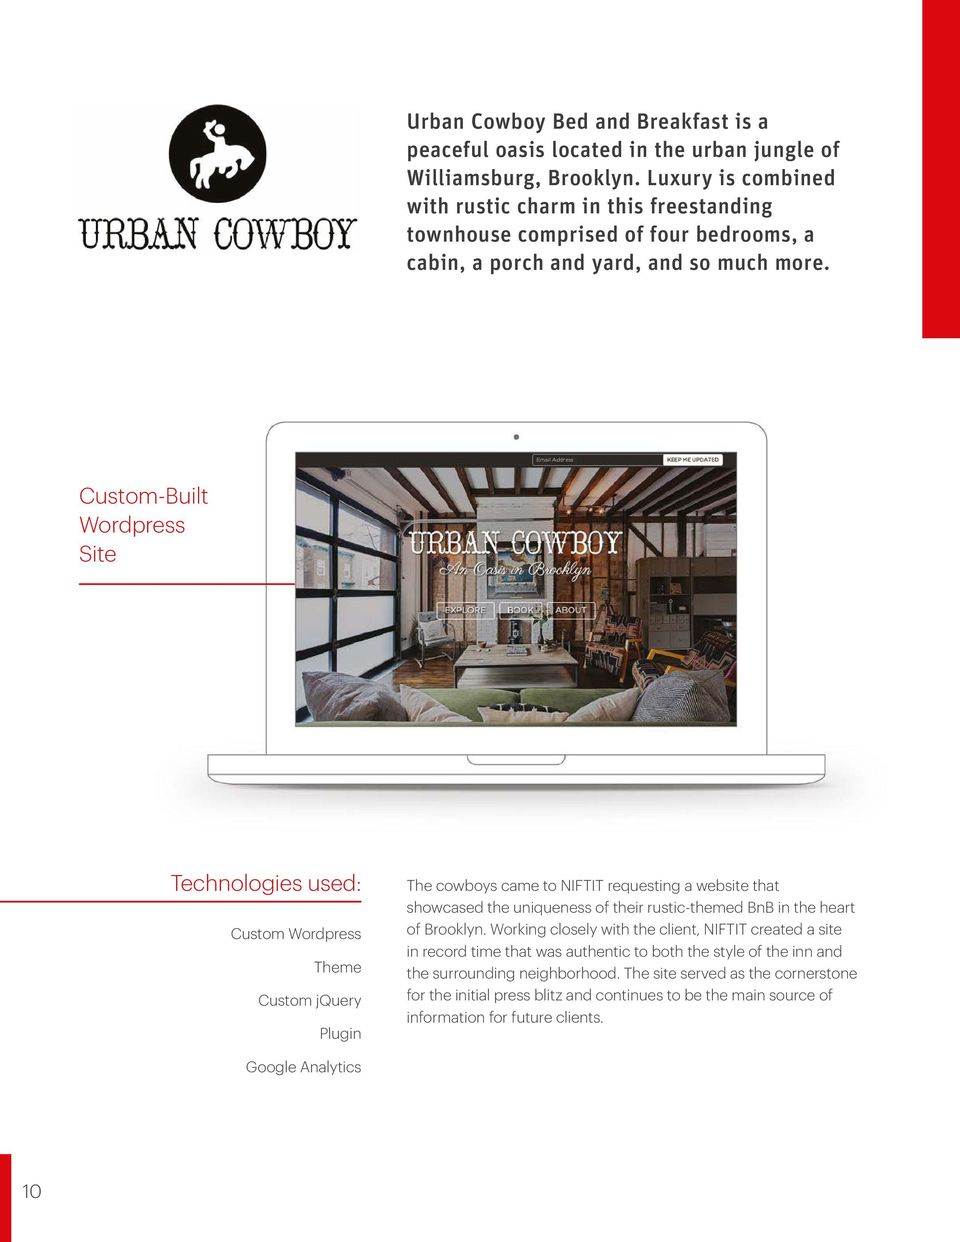 Custom-Built Wordpress Site Technologies used: Custom Wordpress Theme Custom jquery Plugin The cowboys came to NIFTIT requesting a website that showcased the uniqueness of their rustic-themed